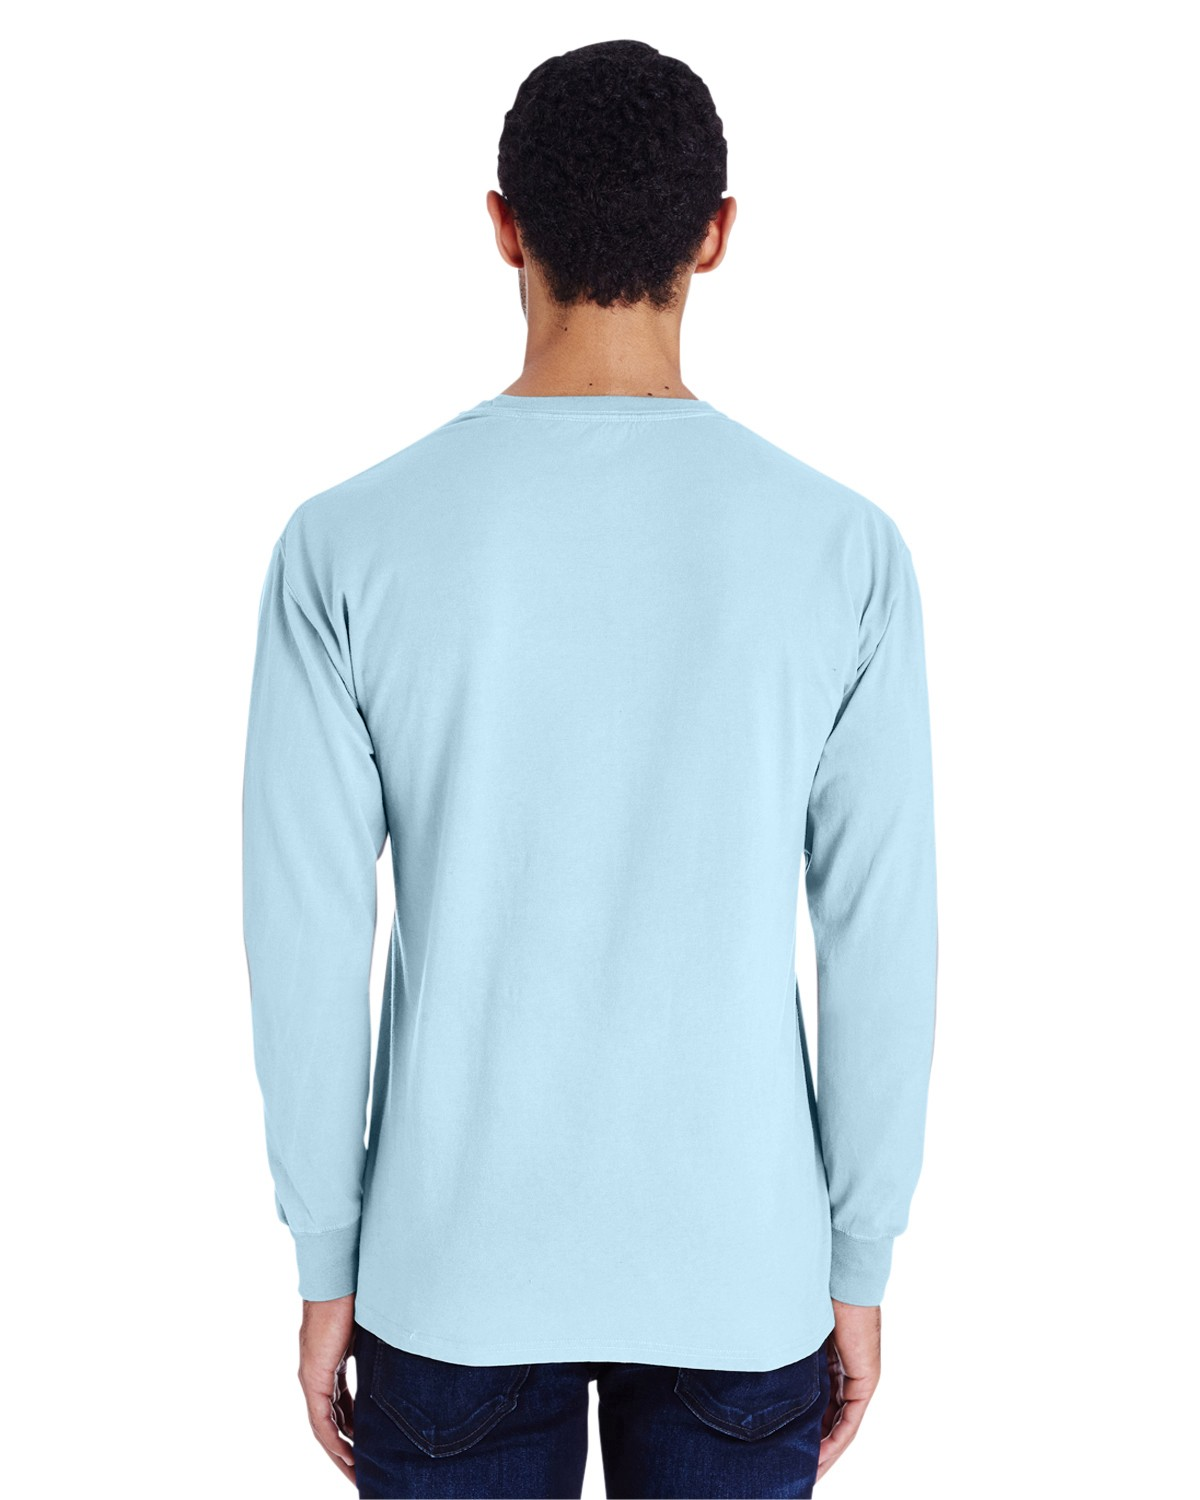 GDH200 ComfortWash by Hanes SOOTHING BLUE